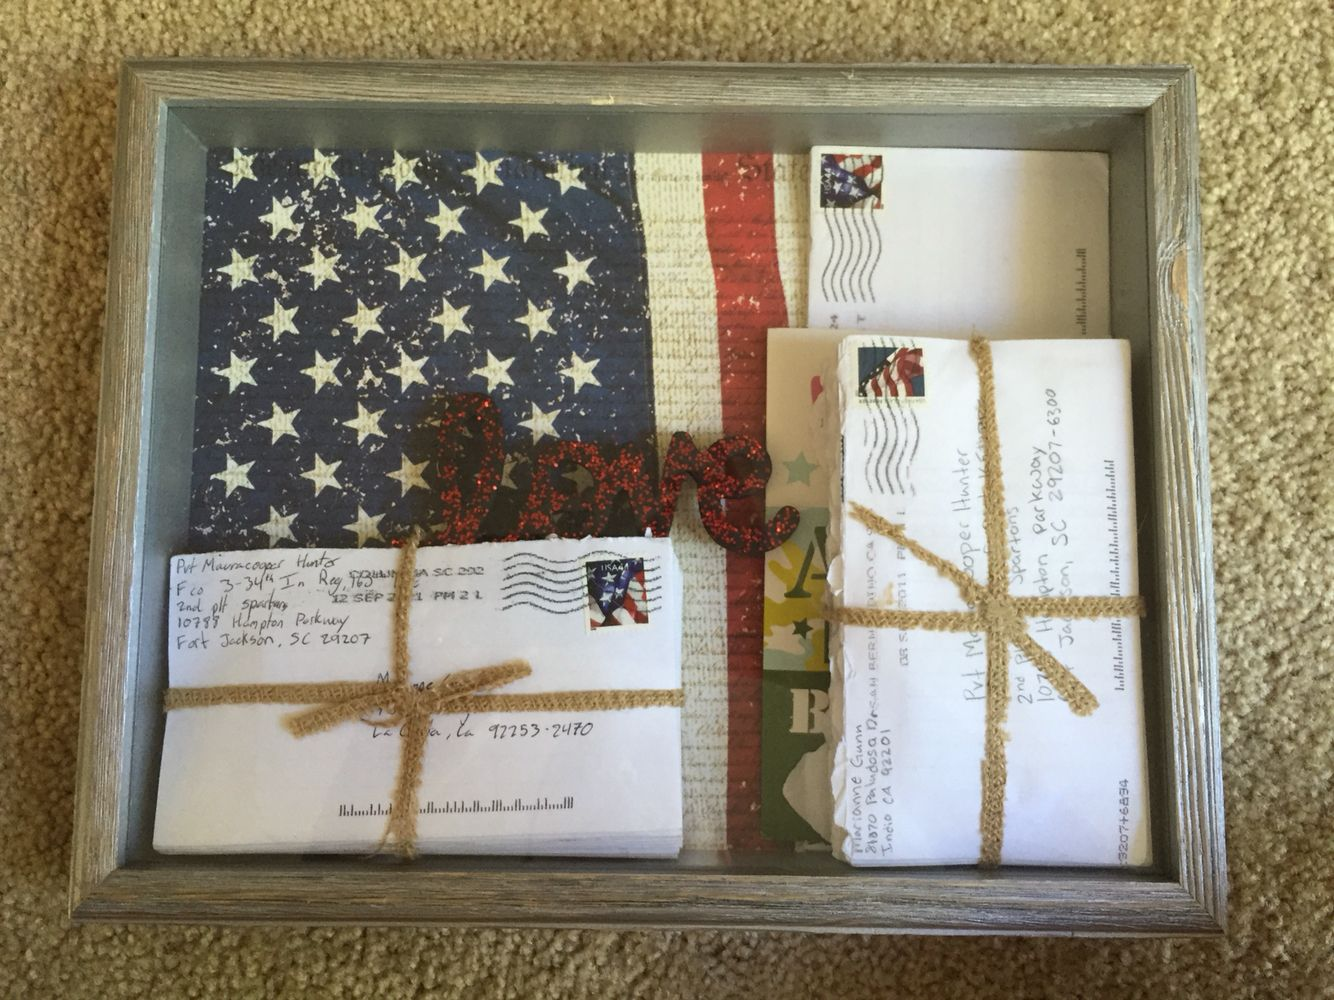 basic training letter display shadow box